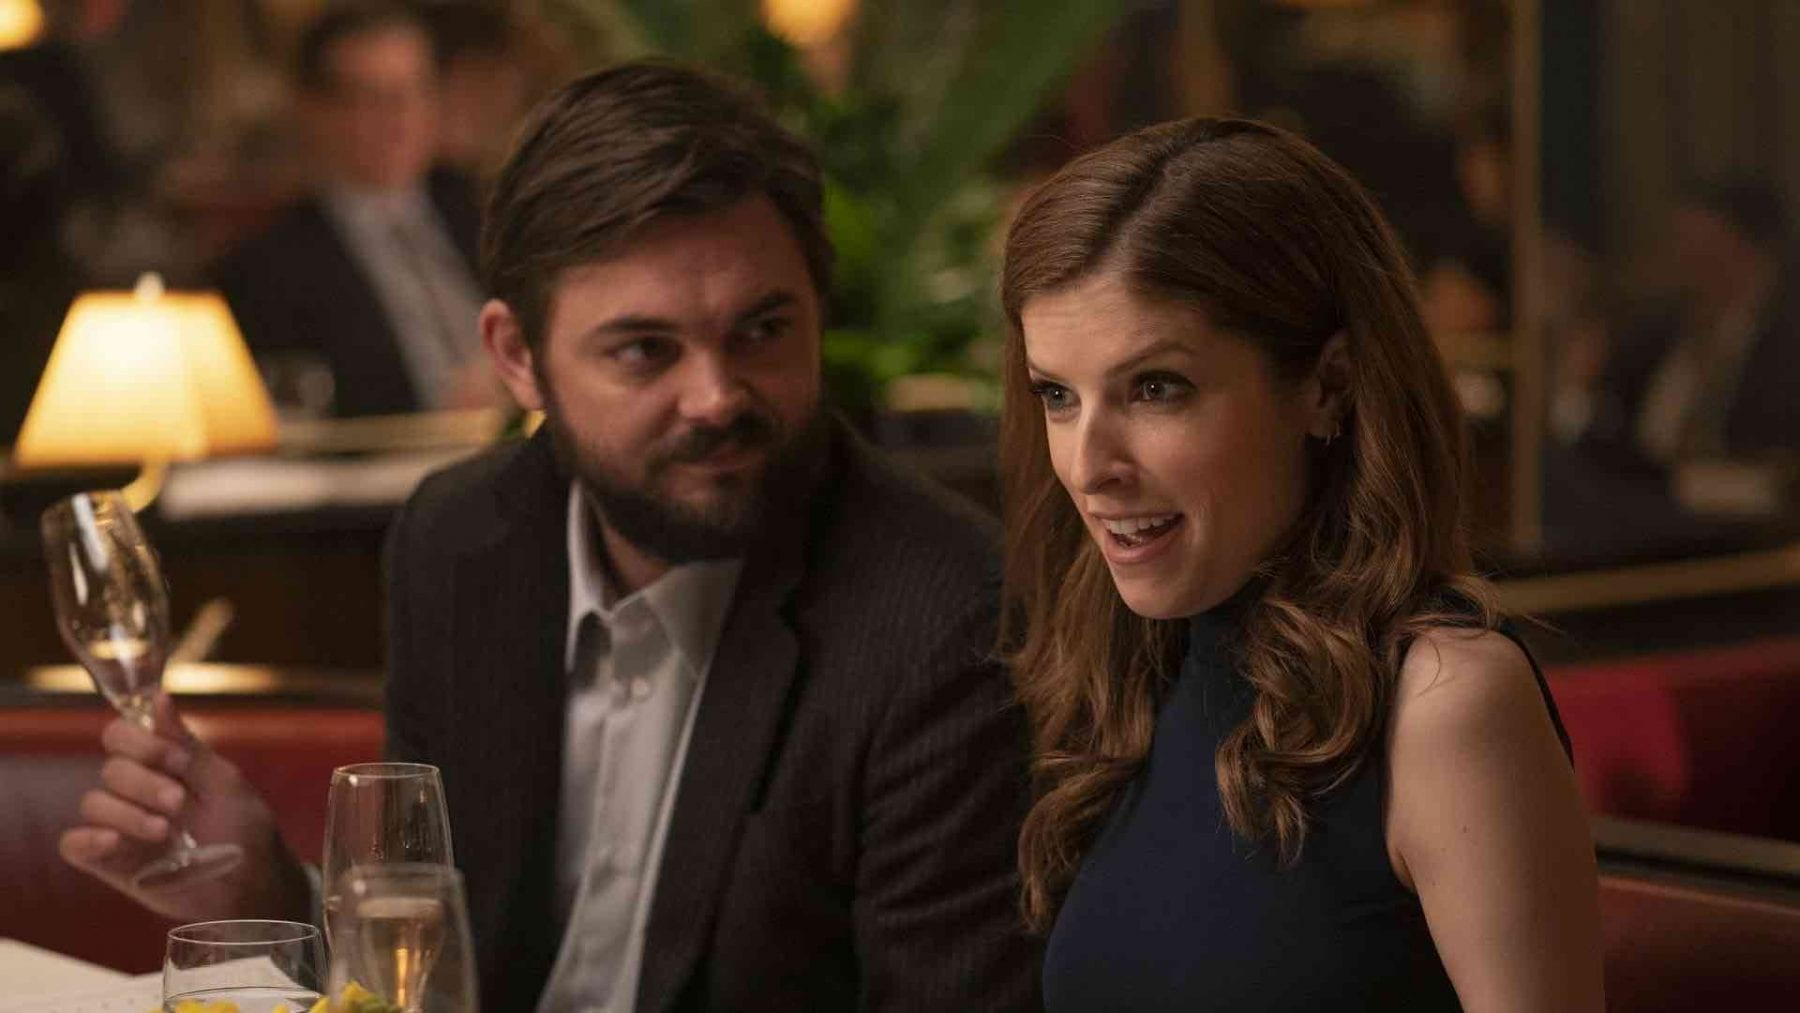 Magnus and Darby (Nick Thune and Anna Kendrick) sit in a restaurant together. Magnus looks at Darby, and Darby looks in bewilderment at an unseen dinner guest.